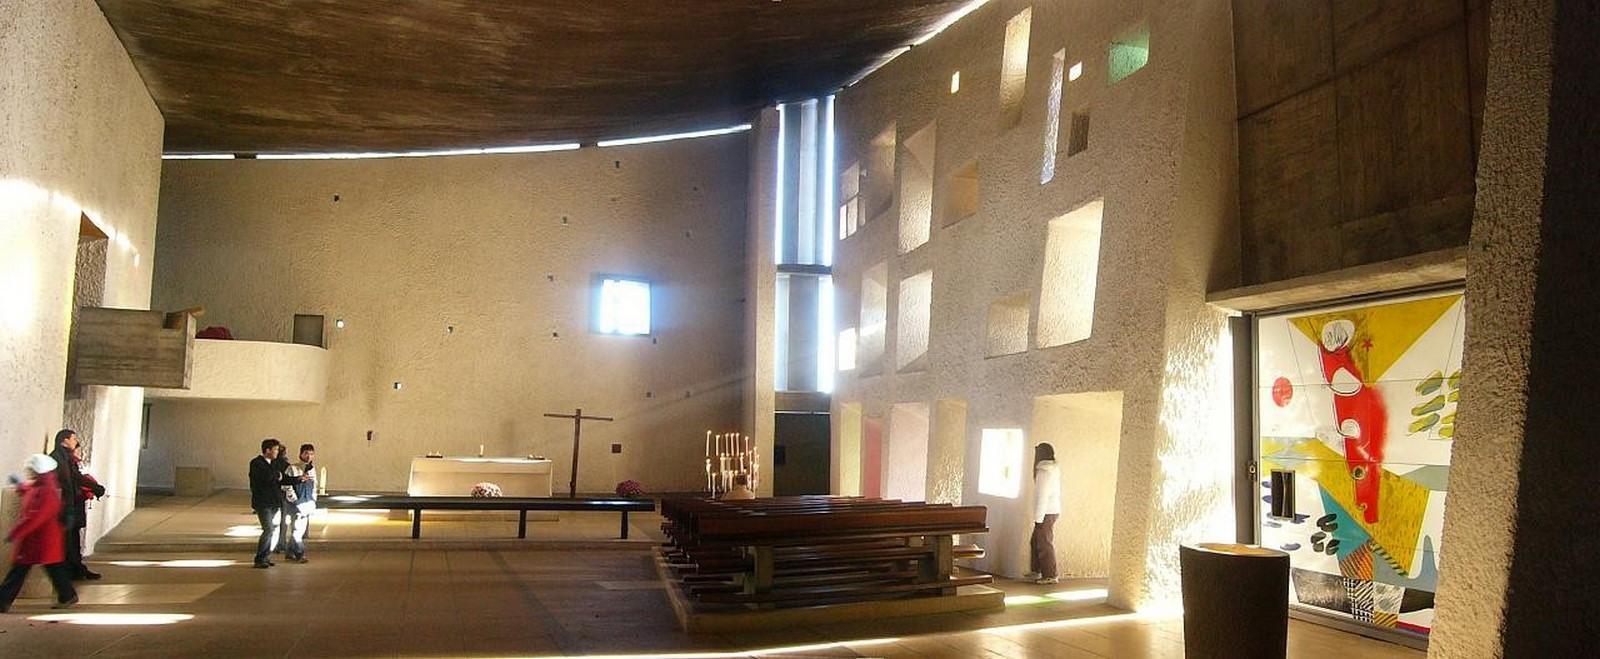 Notre Dame du Haut, France by Le Corbusier: The first Post-Modern building - Sheet6